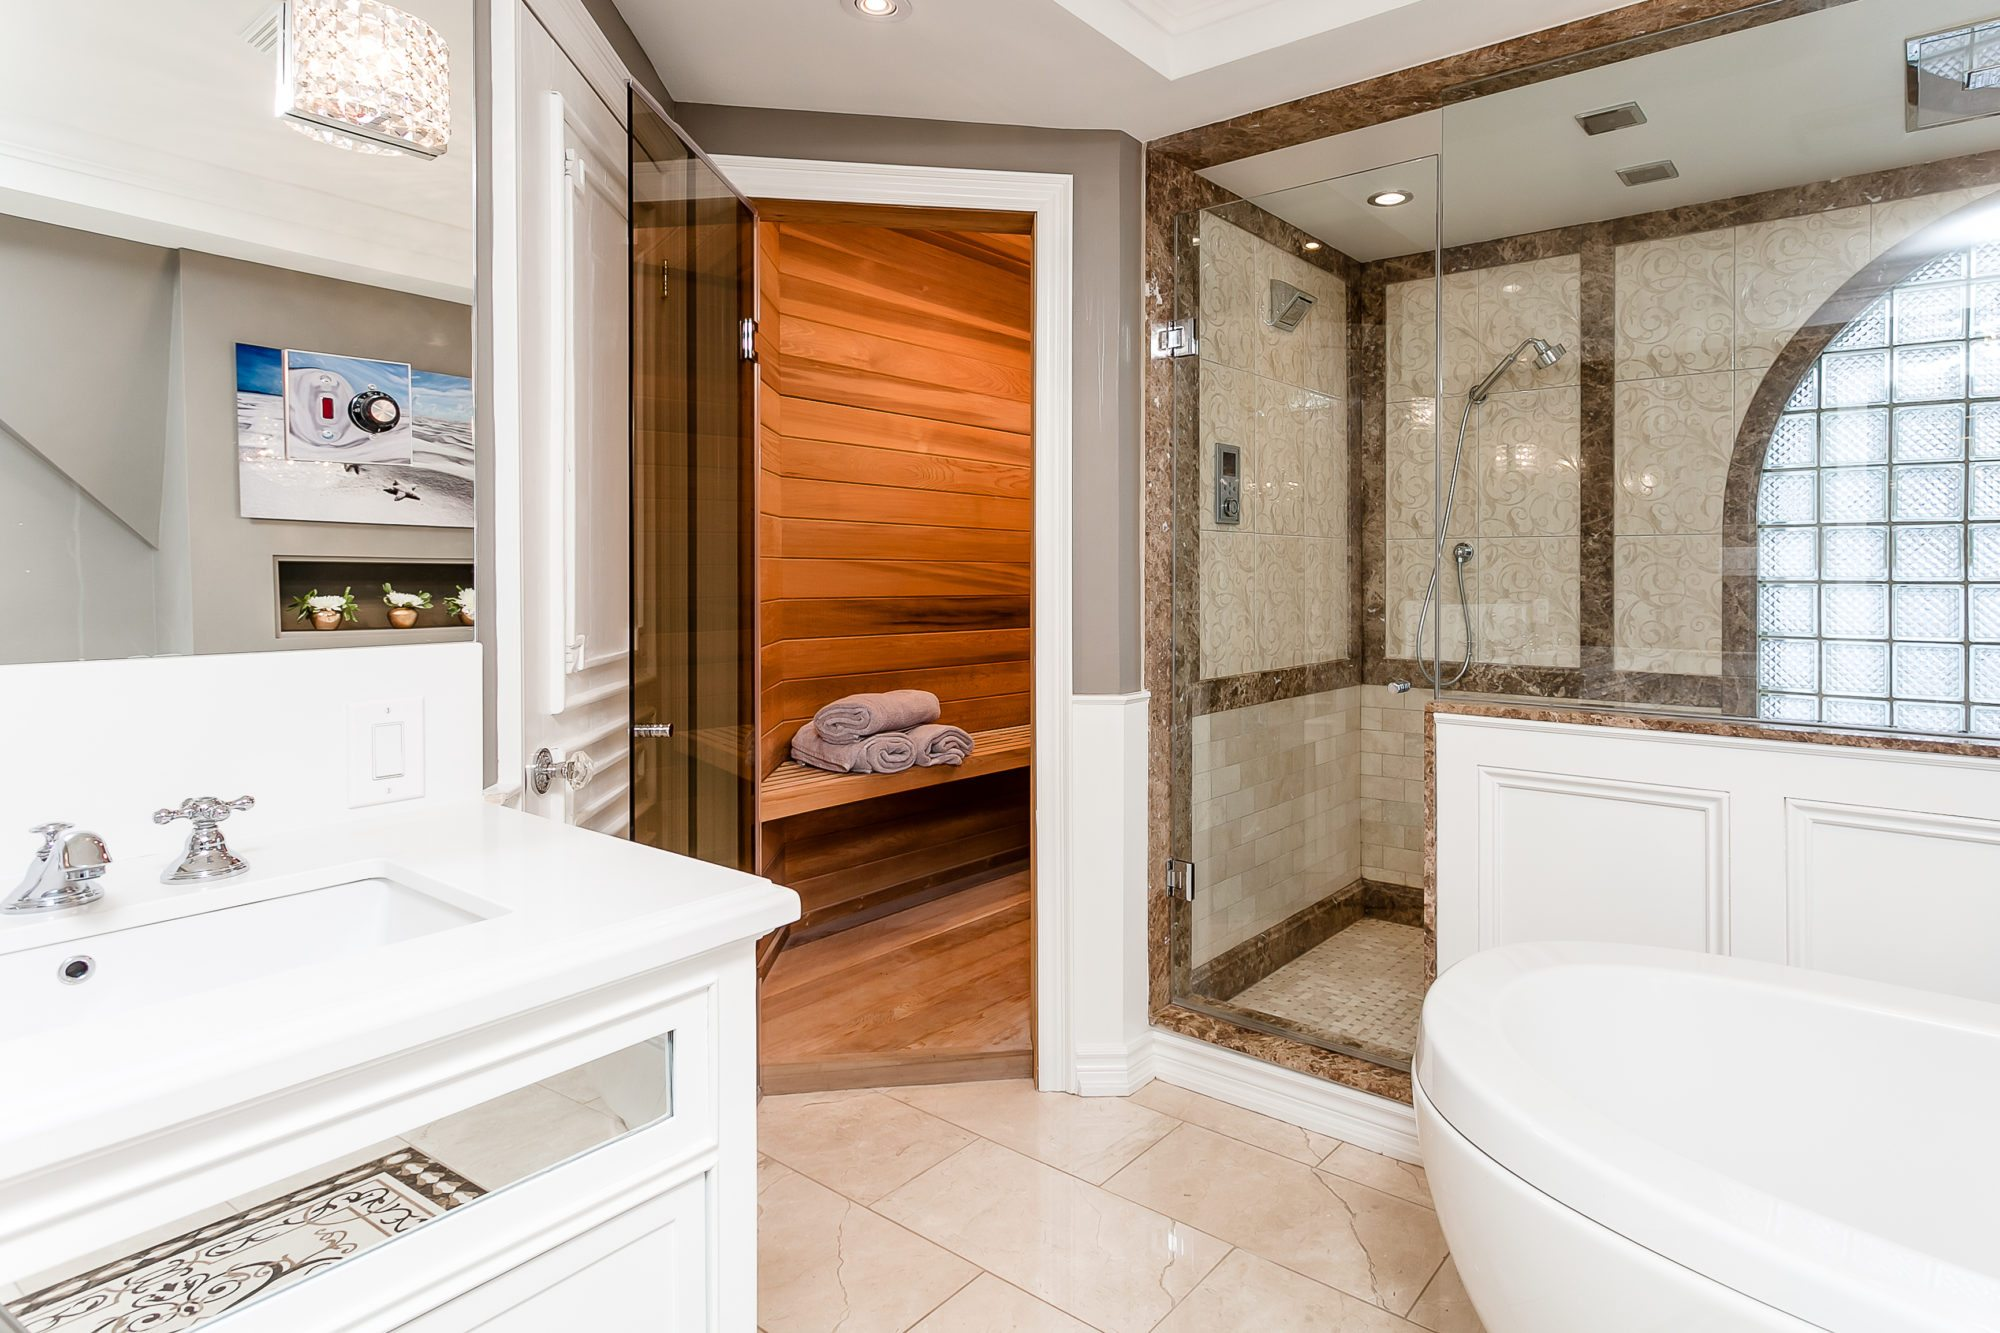 toronto-house-for-sale-118-givins-street-11